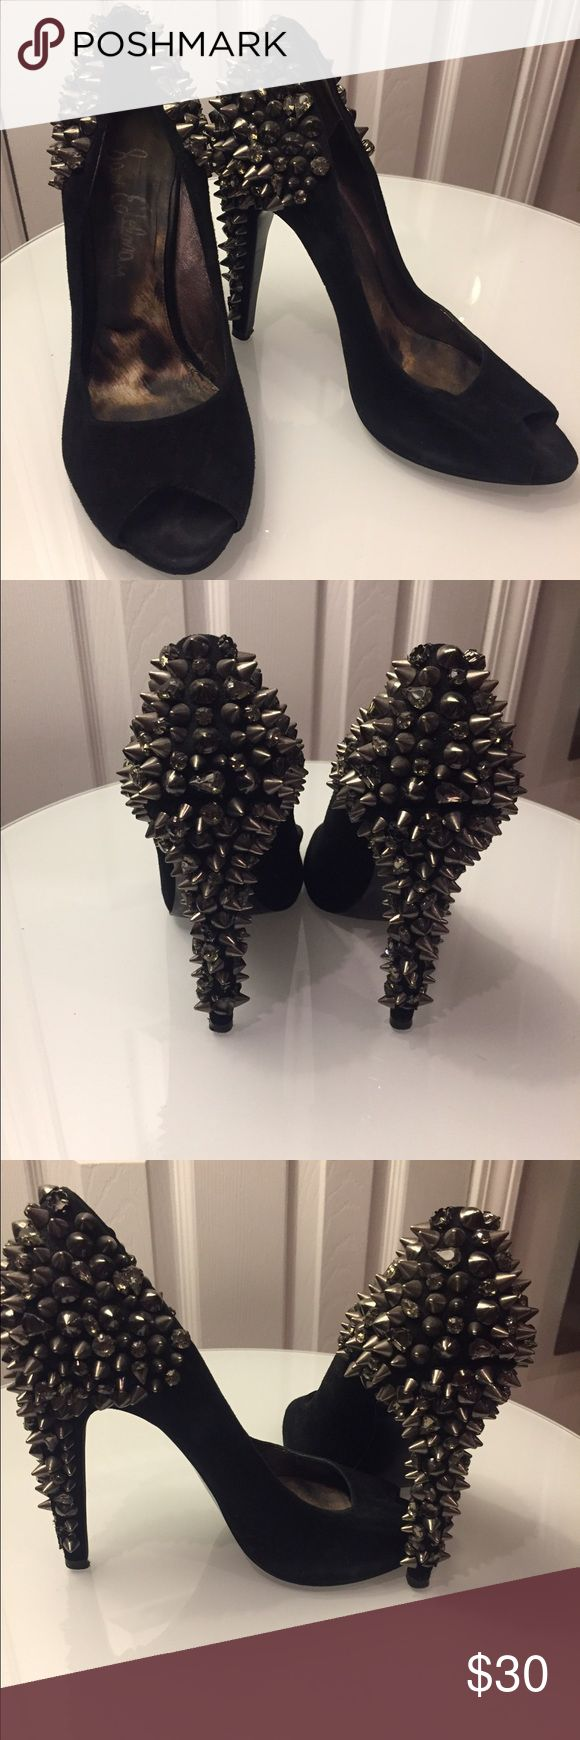 Sam Edelman Spiked Heels Sam Edelman open toe all black spiked heel. Couple of spikes are missing. Lightly used. Sam Edelman Shoes Heels